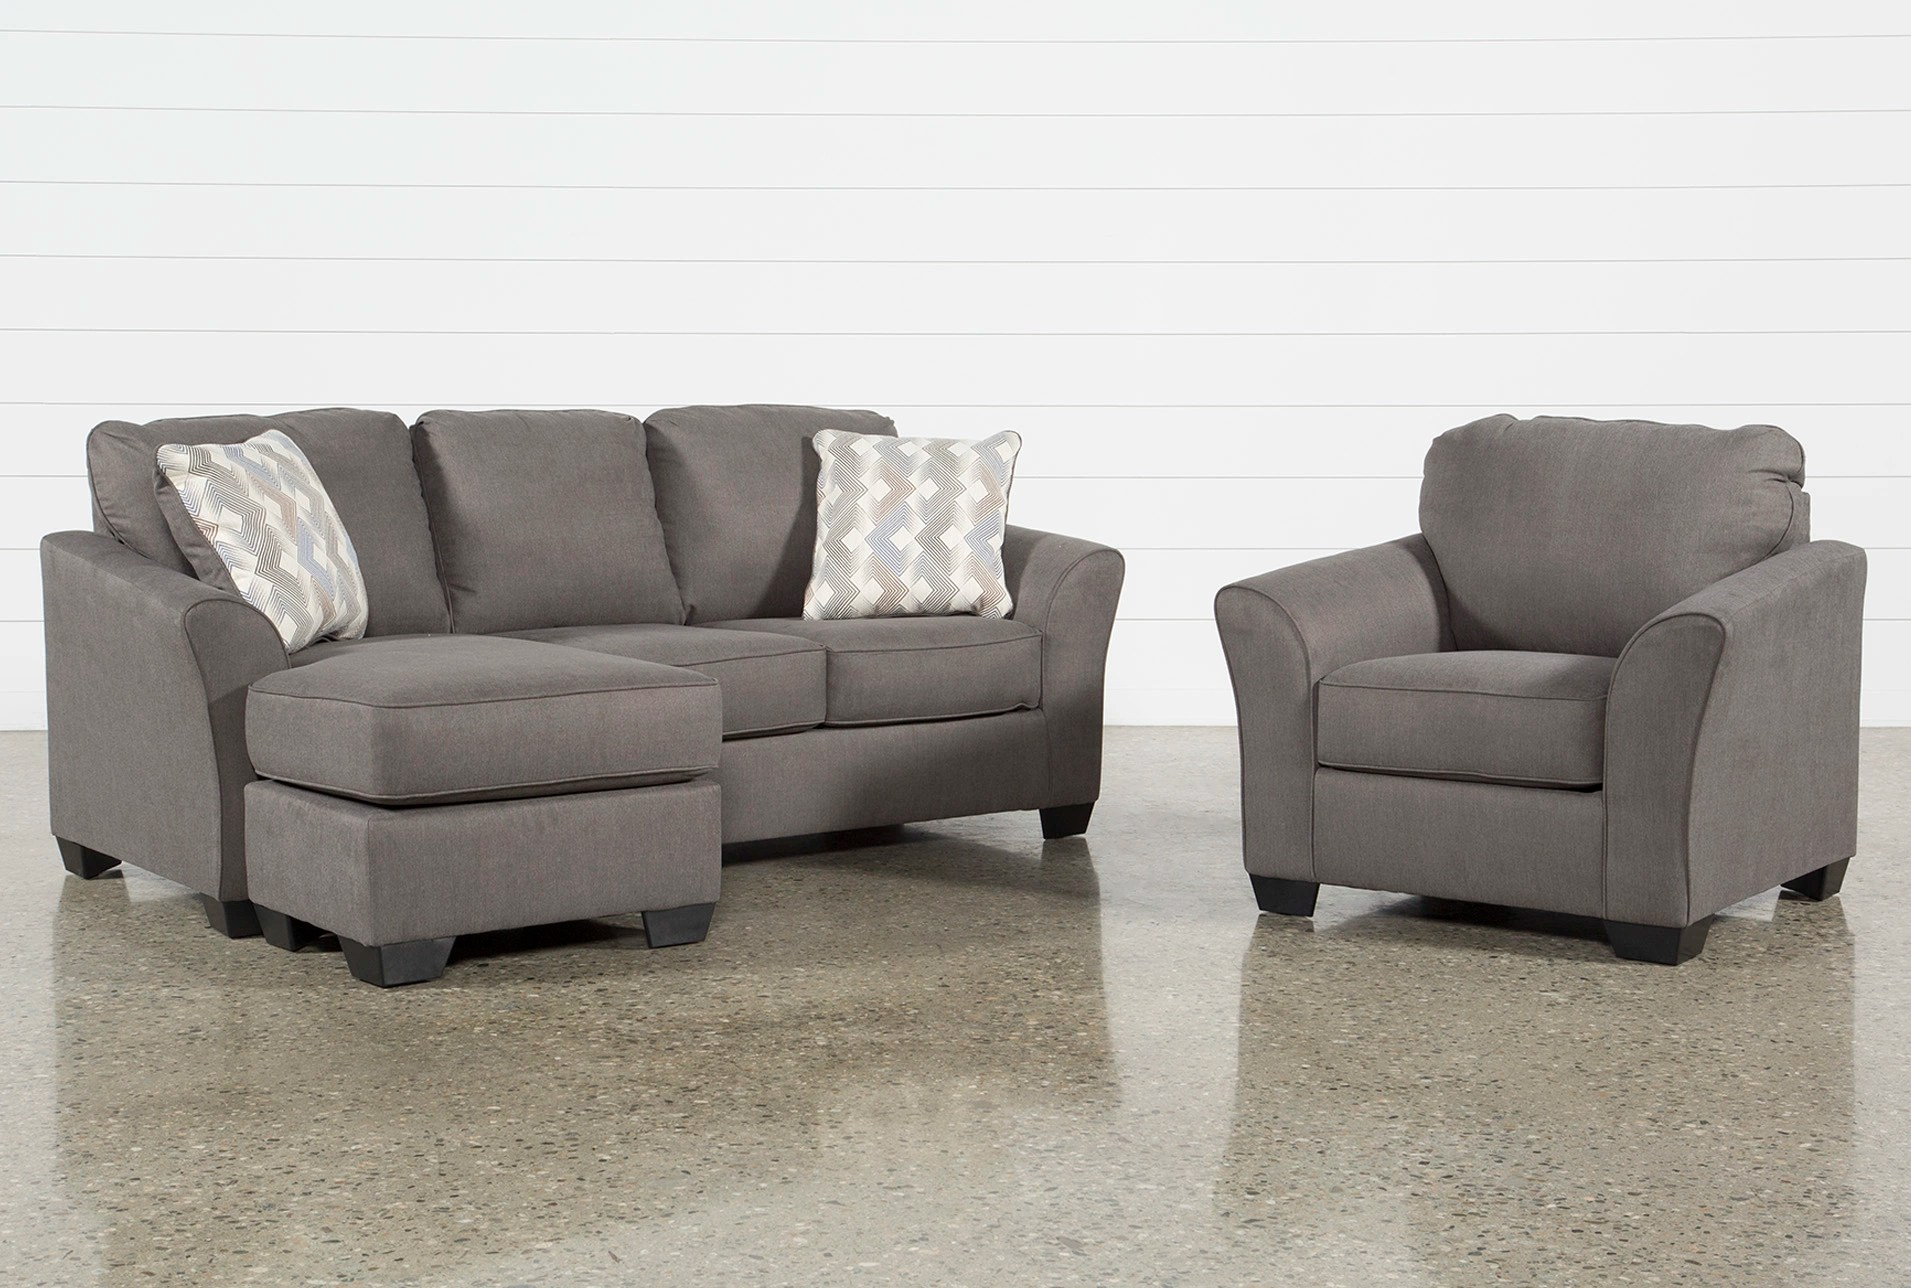 Sleeper Chairs Tucker 2 Piece Living Room Set With Queen Sleeper And Arm Chair